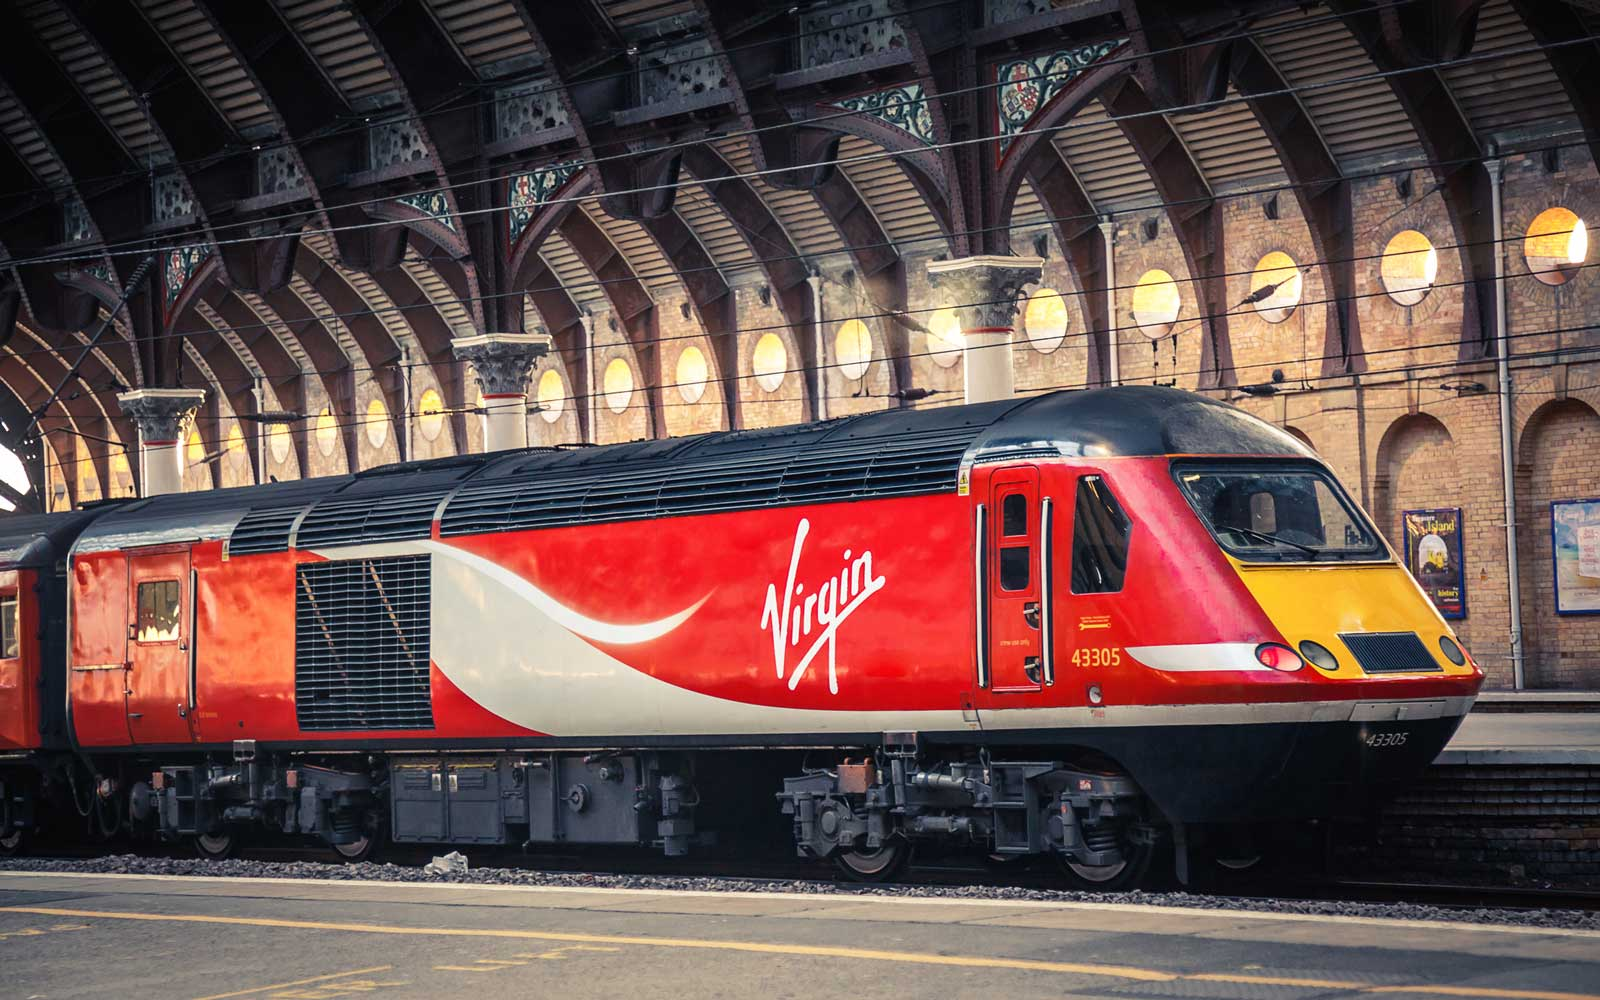 red virgin train pulls into covered station